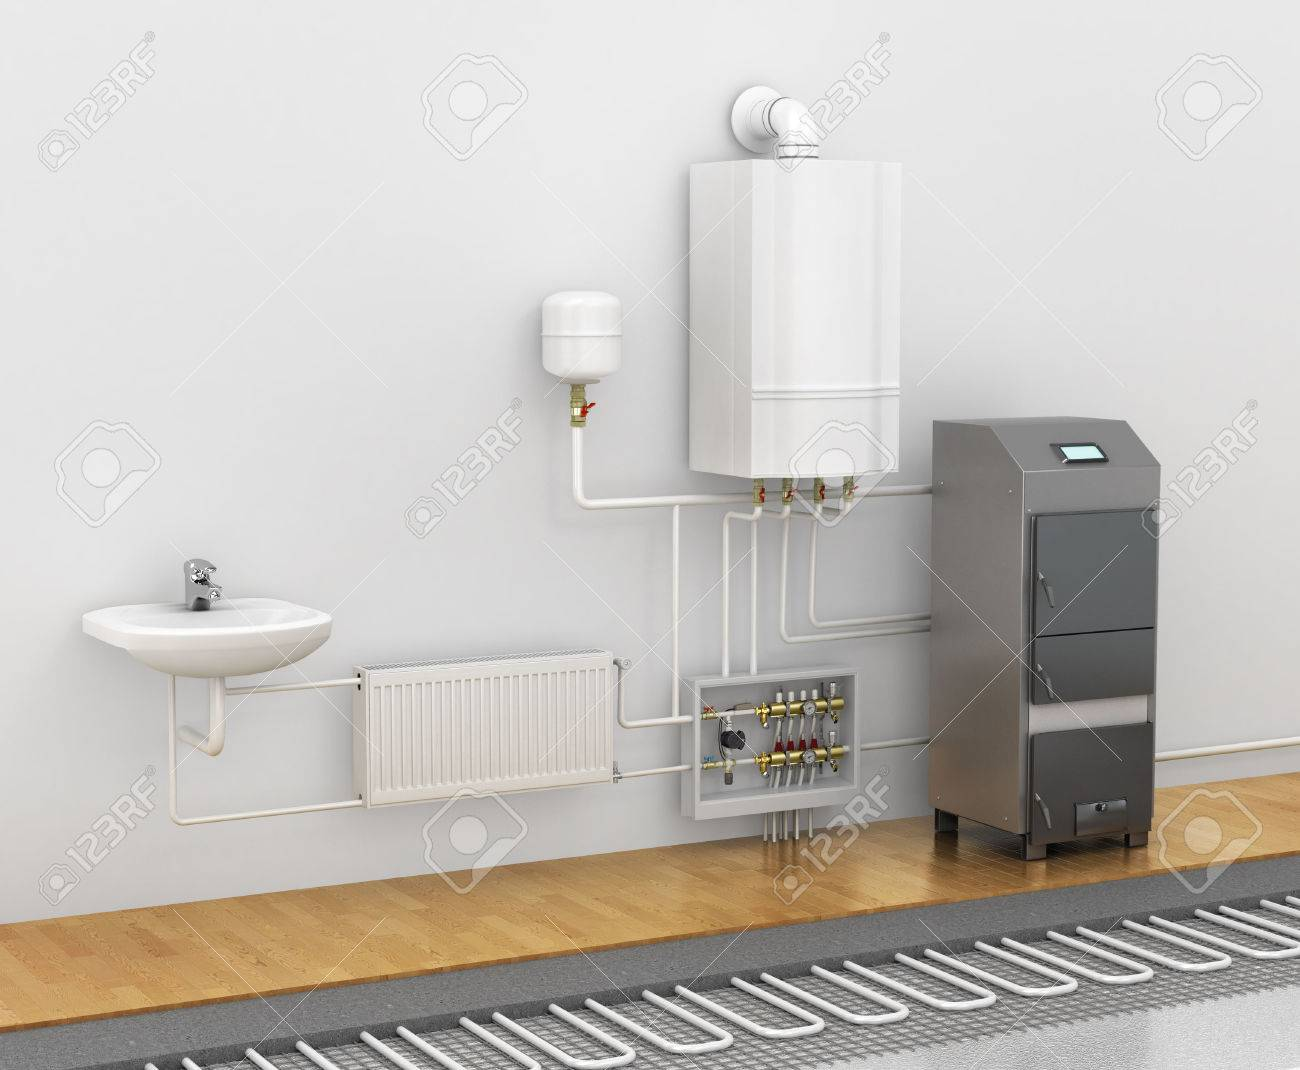 concept of the scheme of the heating system spend a warm floor